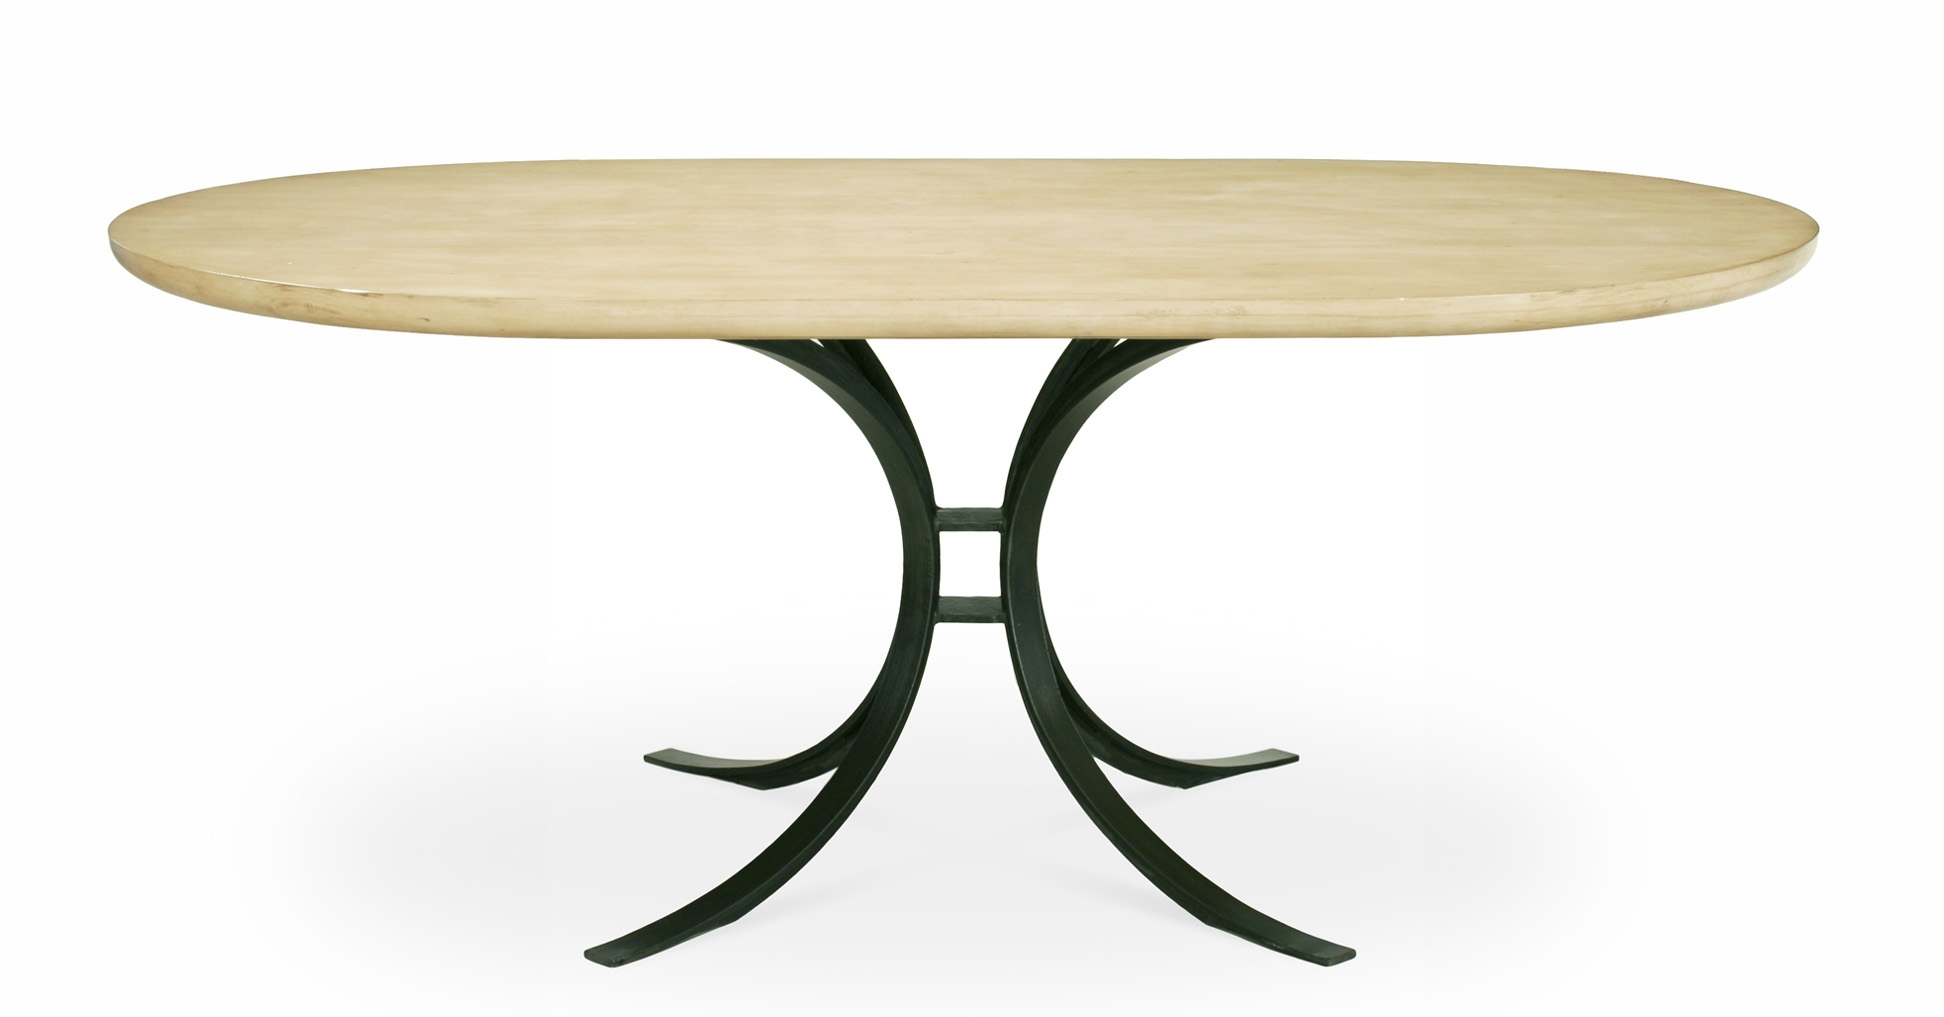 Oval Dining Tables For Sale Pertaining To Preferred Quincy Oval Dining Table For Sale – Cottage & Bungalow (View 16 of 25)